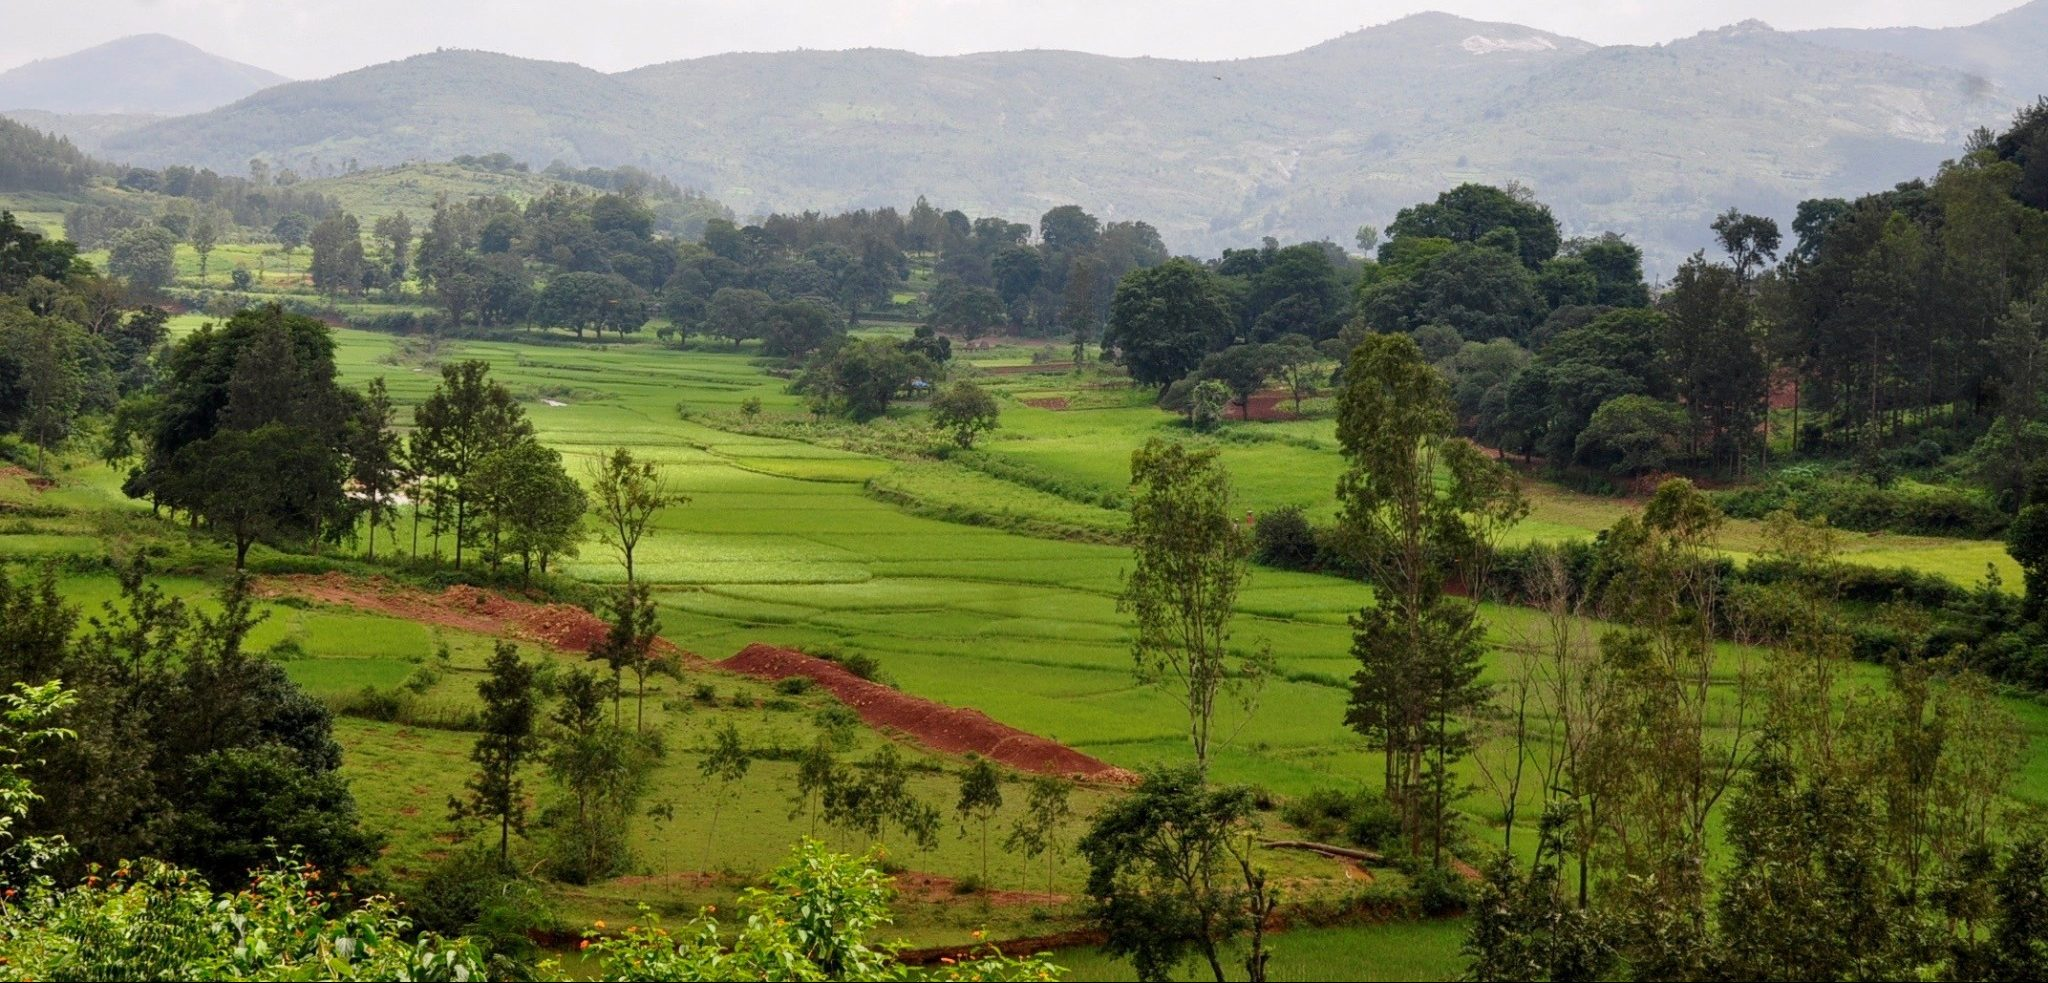 The Landscape Approach of The Livelihoods Araku #2 Project In India